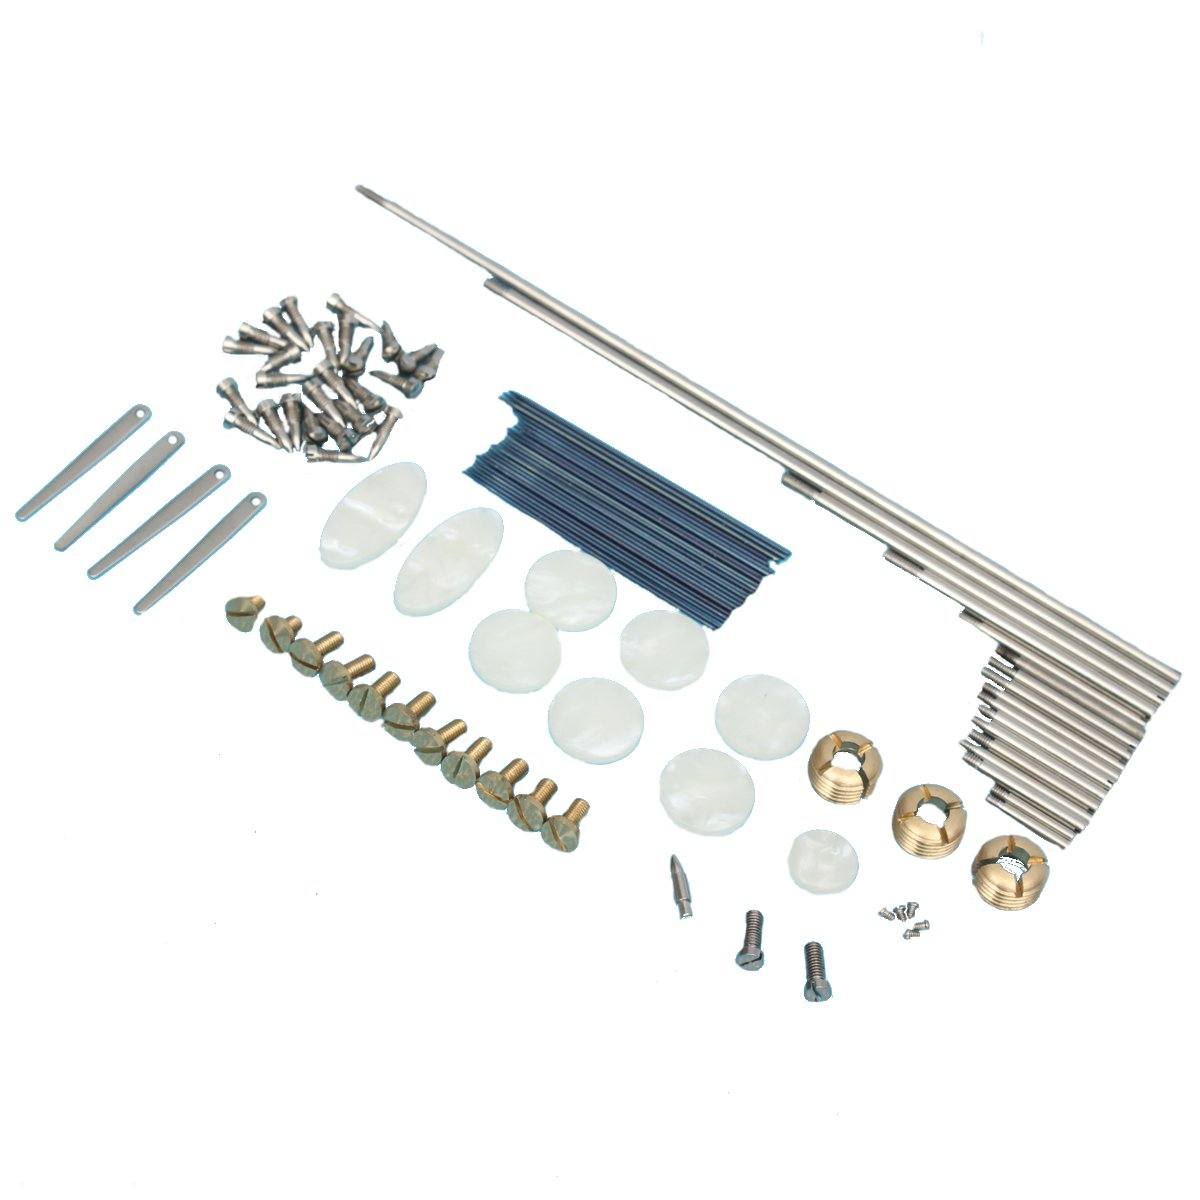 Repair Parts Screws Springs And Key Buttons Inlays for